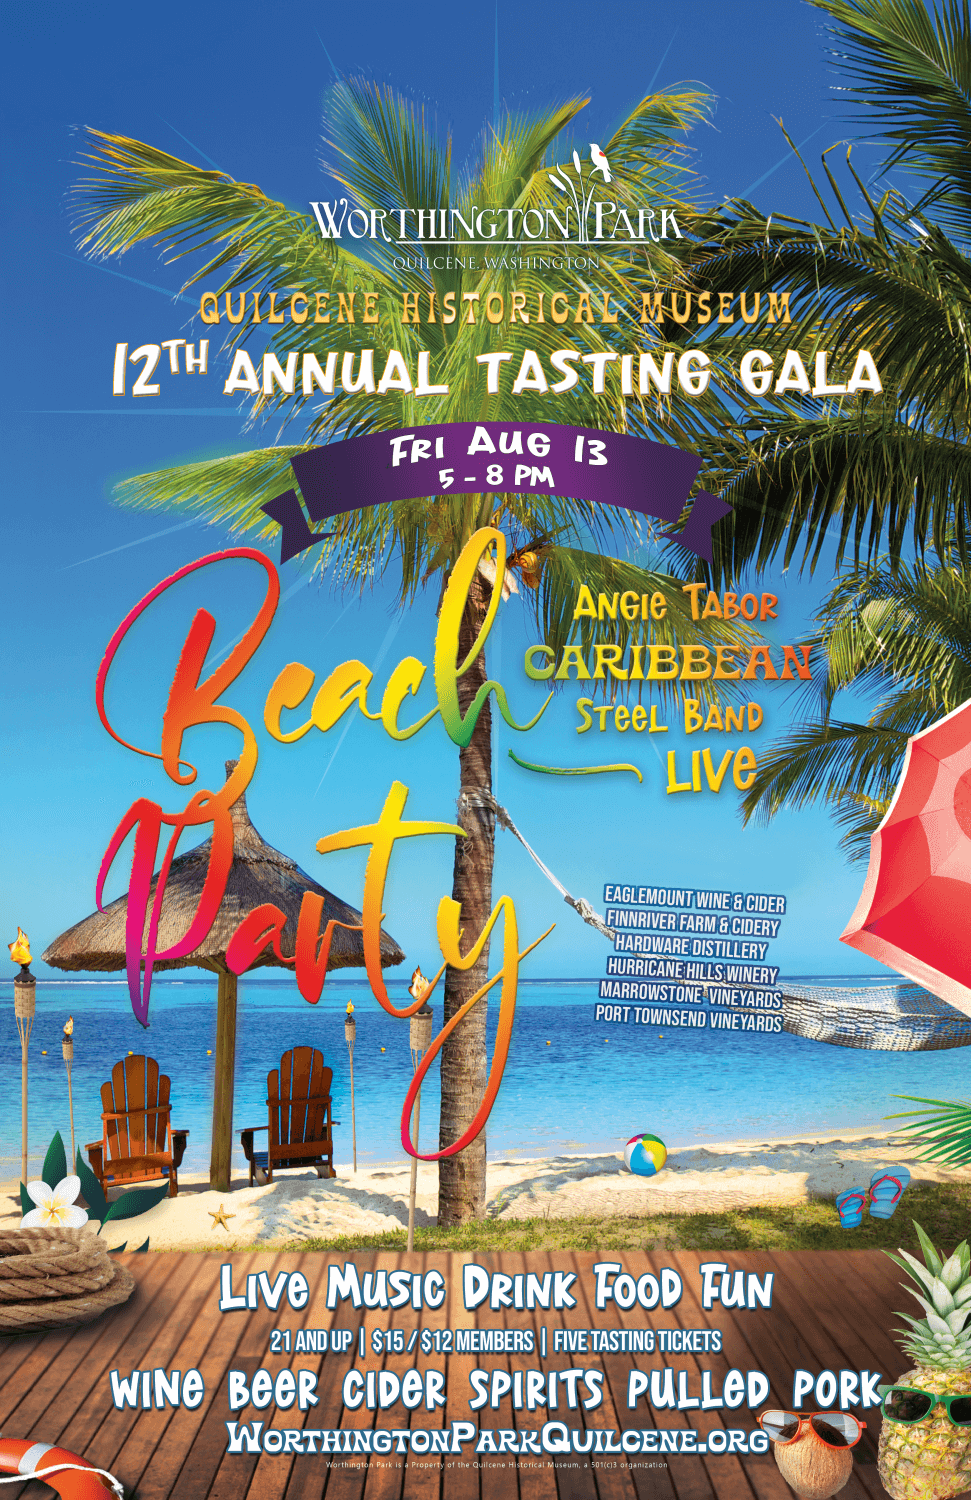 Worthington Park 12th Annual Tasting Gala Poster with event details.